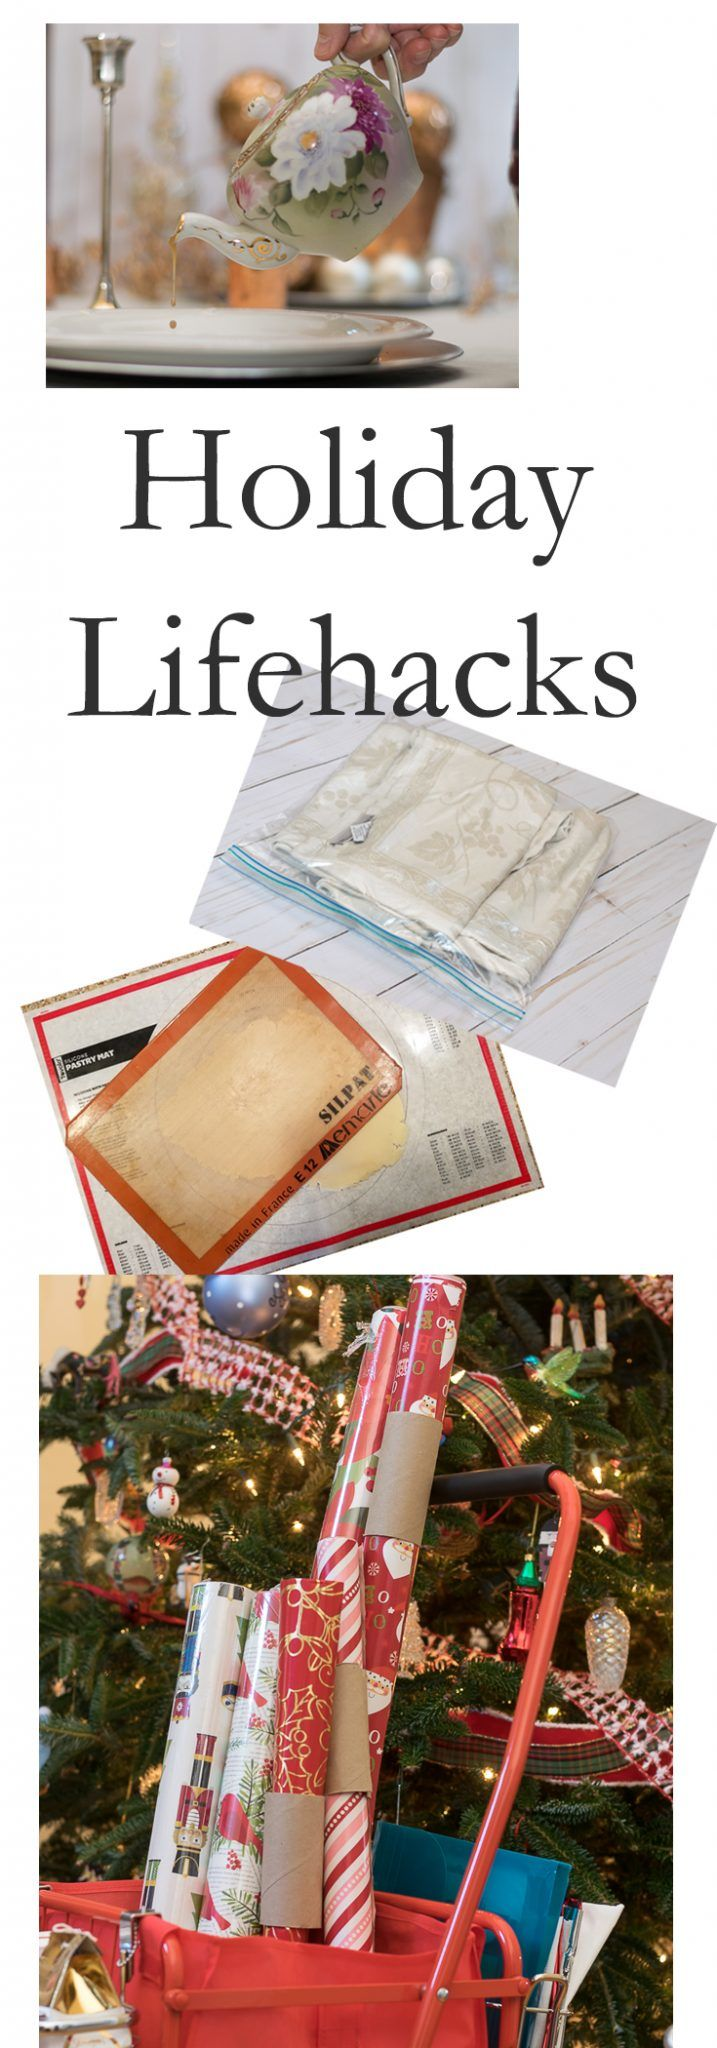 Holiday Lifehacks and useful tips to make your holiday and entertaining just a little easier, less expensive or to help you work smarter during the holidays. Hacks and Life Hacks.